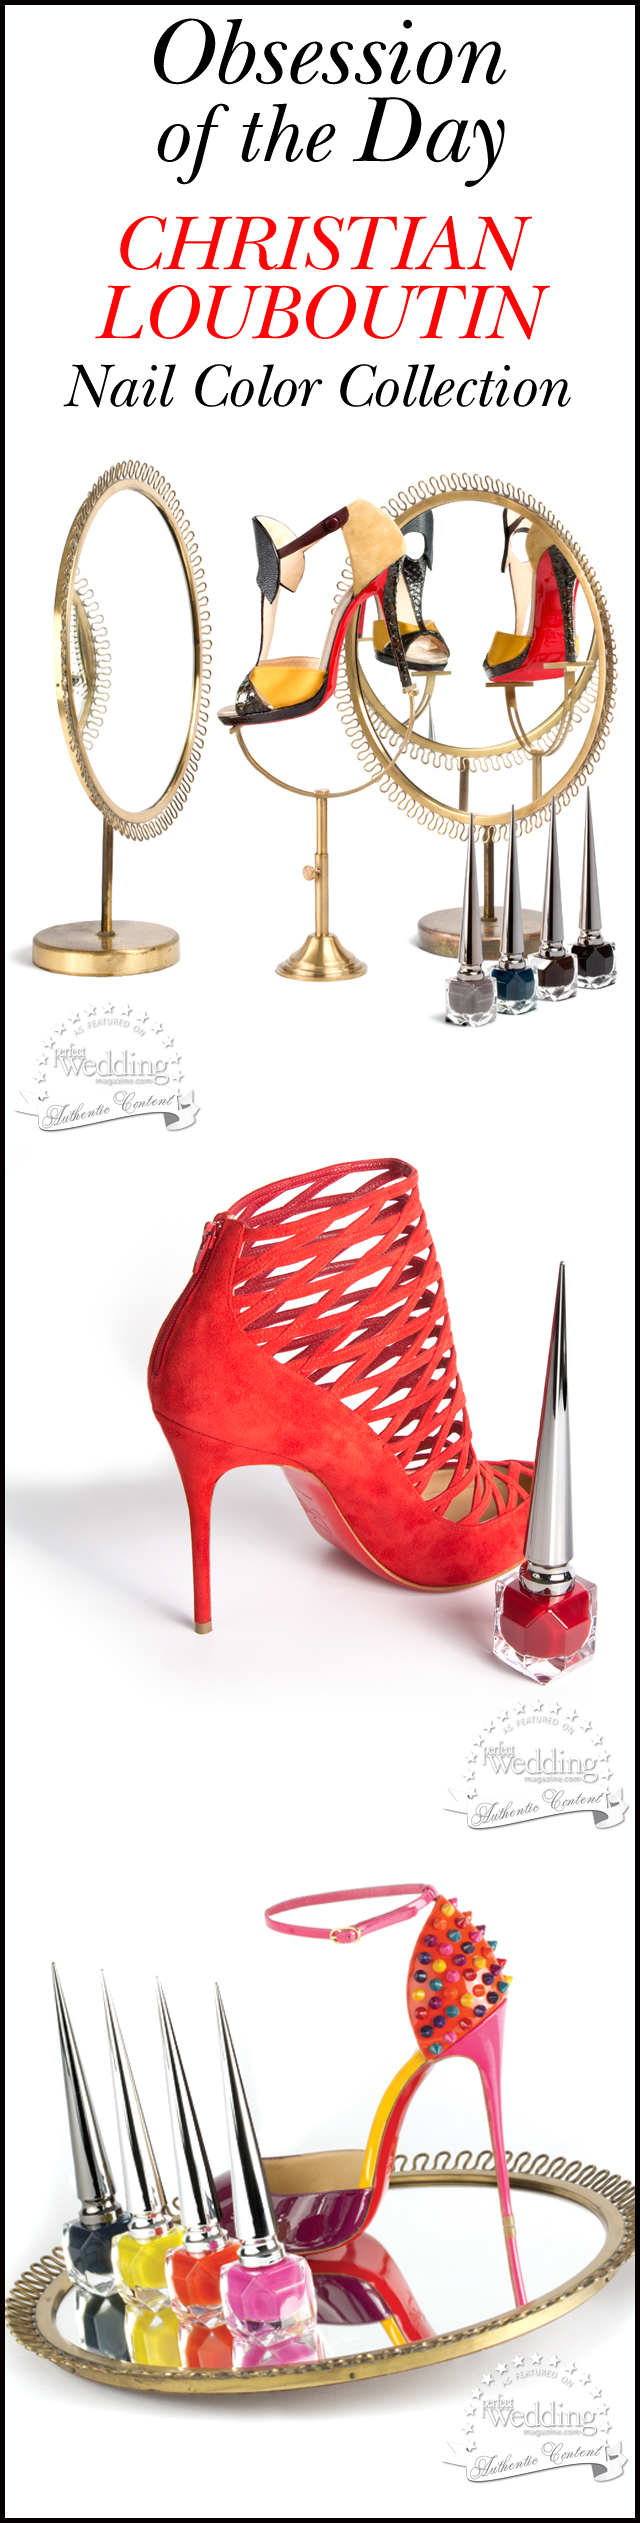 Chrisitian Louboutin, Chrisitian Louboutin Nail Color Collection, Bridal Beauty, Nail Trends, Perfect Wedding Magazine, Perfect Wedding Magazine Blog